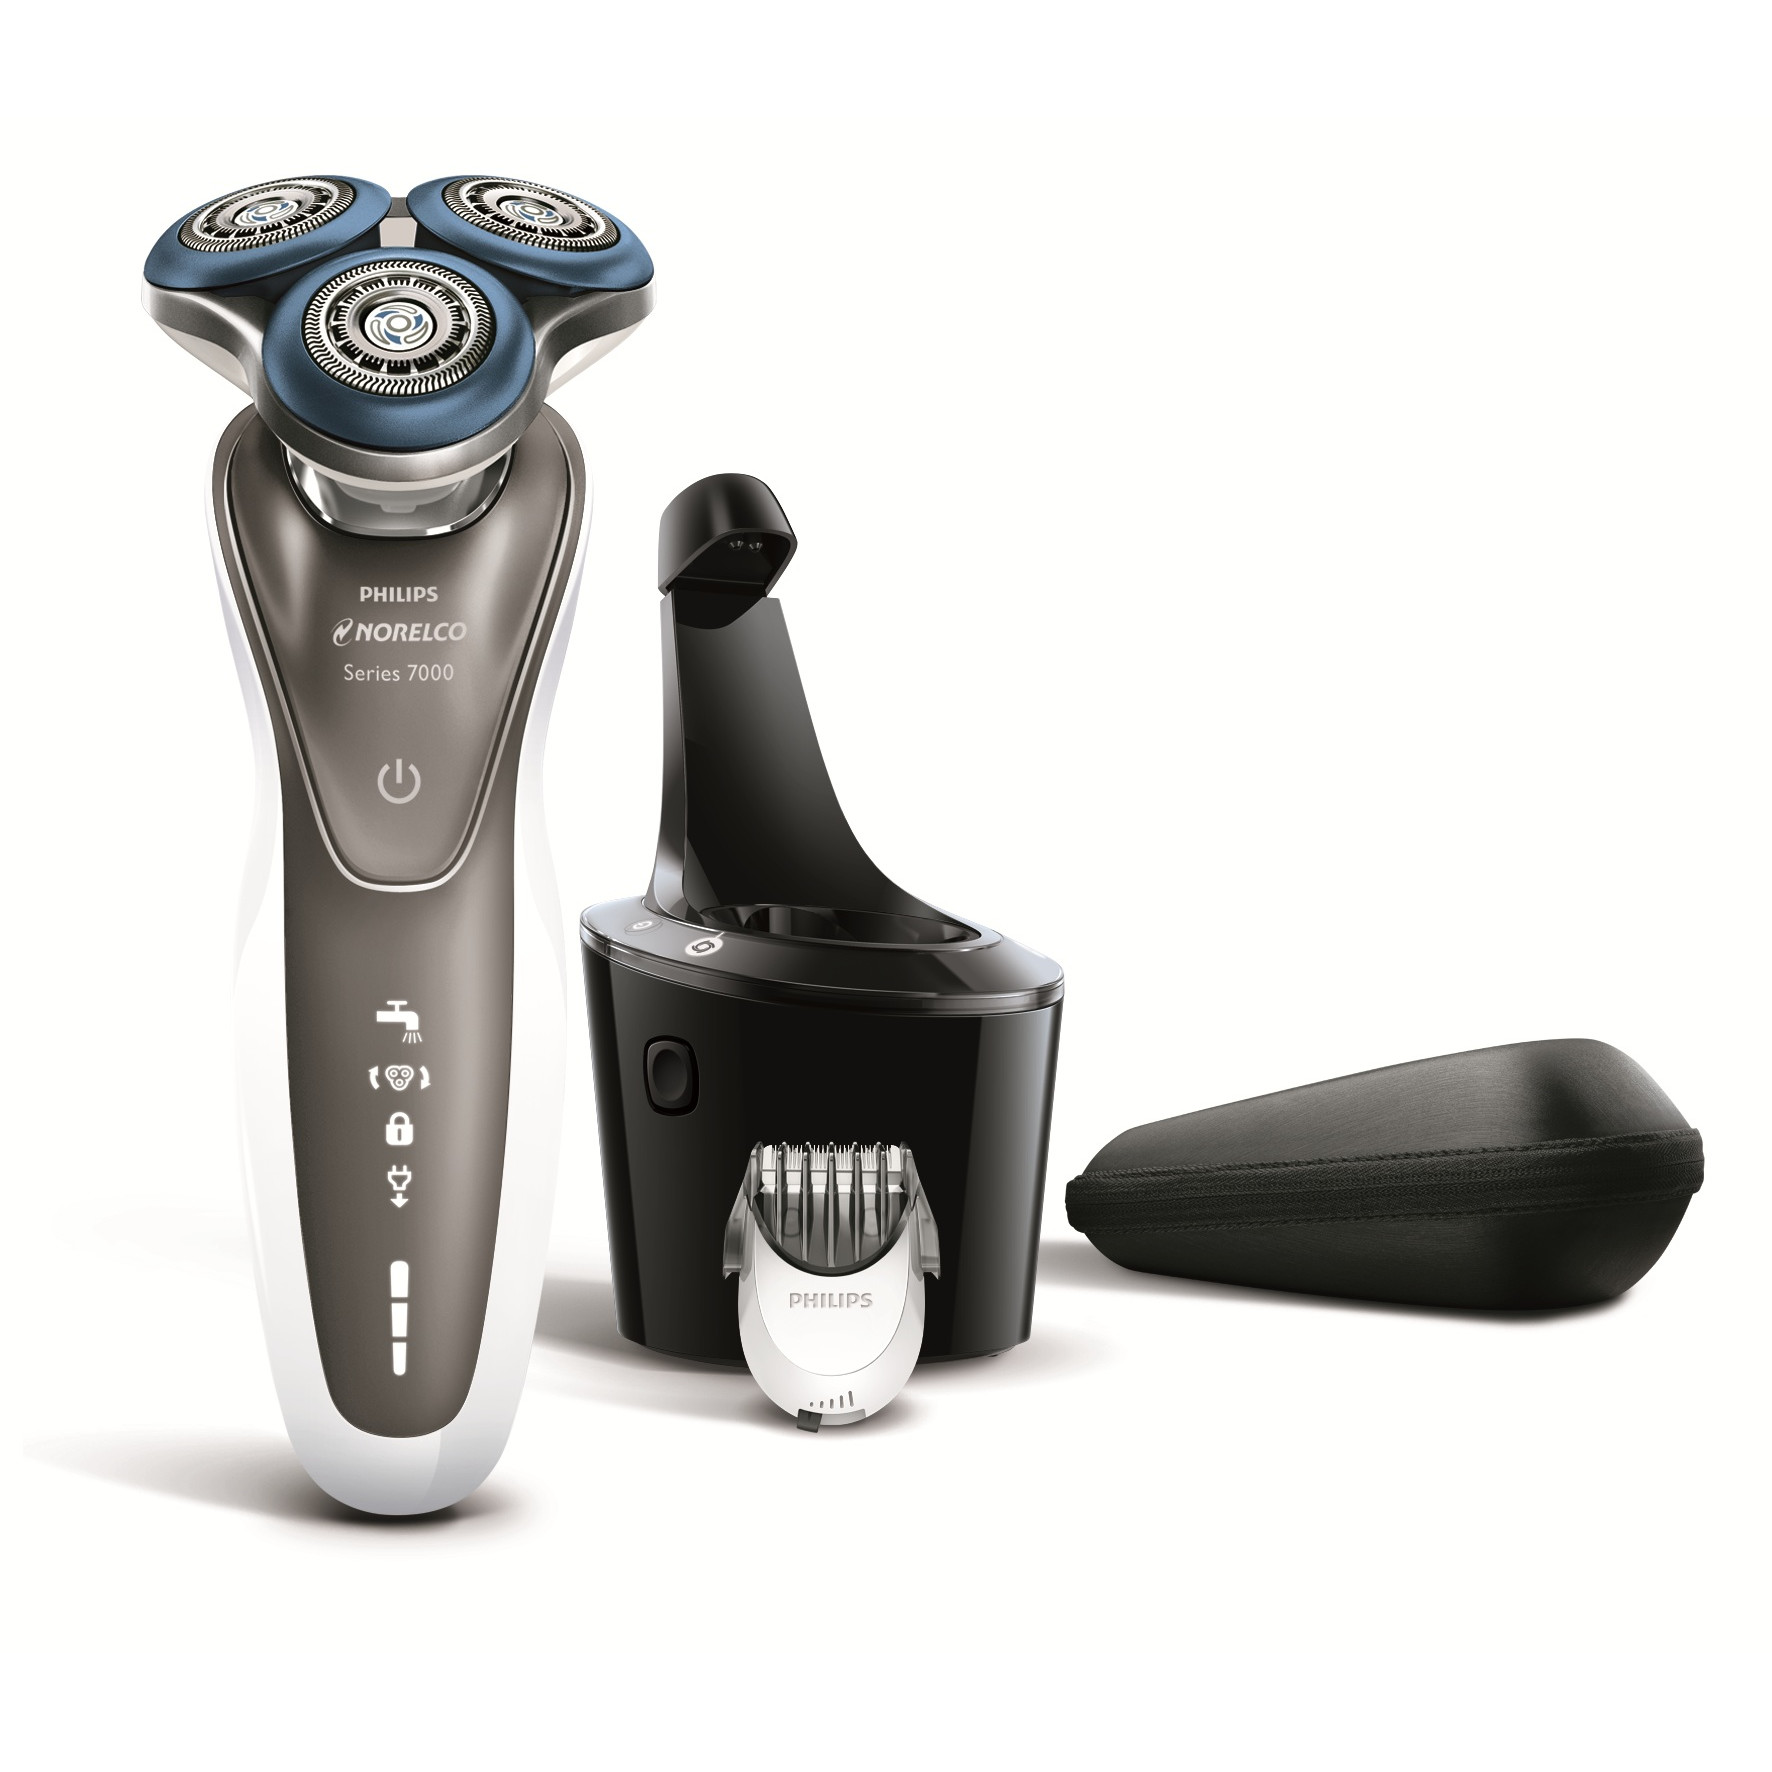 Philips Norelco Electric Shaver 7700 for Sensitive Skin with Beard Styler, S7720/85